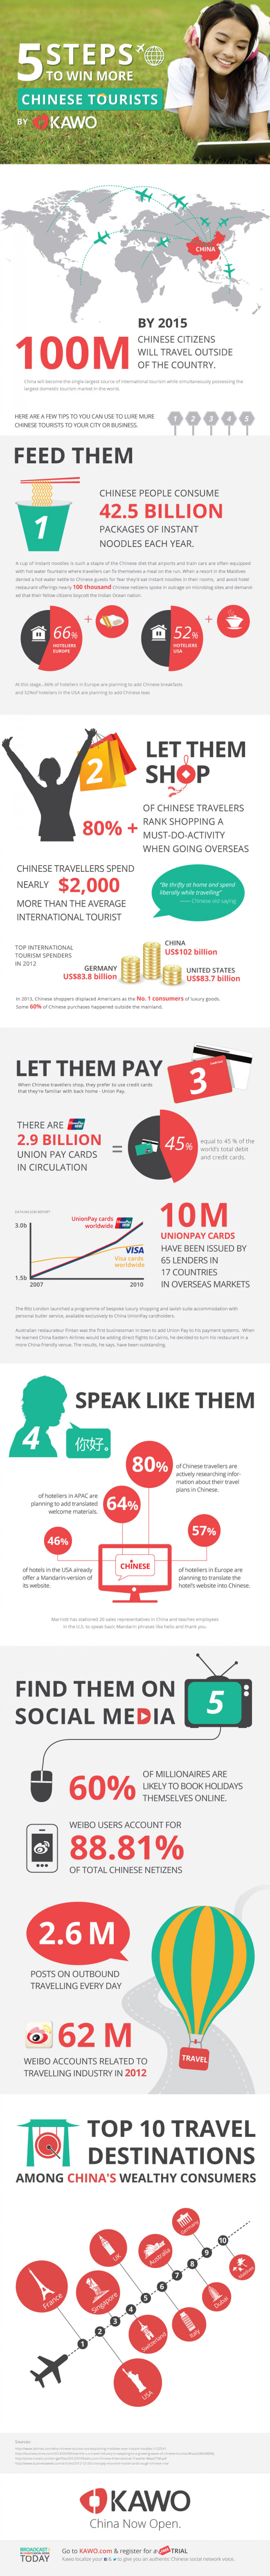 5 Steps to Win More Chinese Tourists Infographic